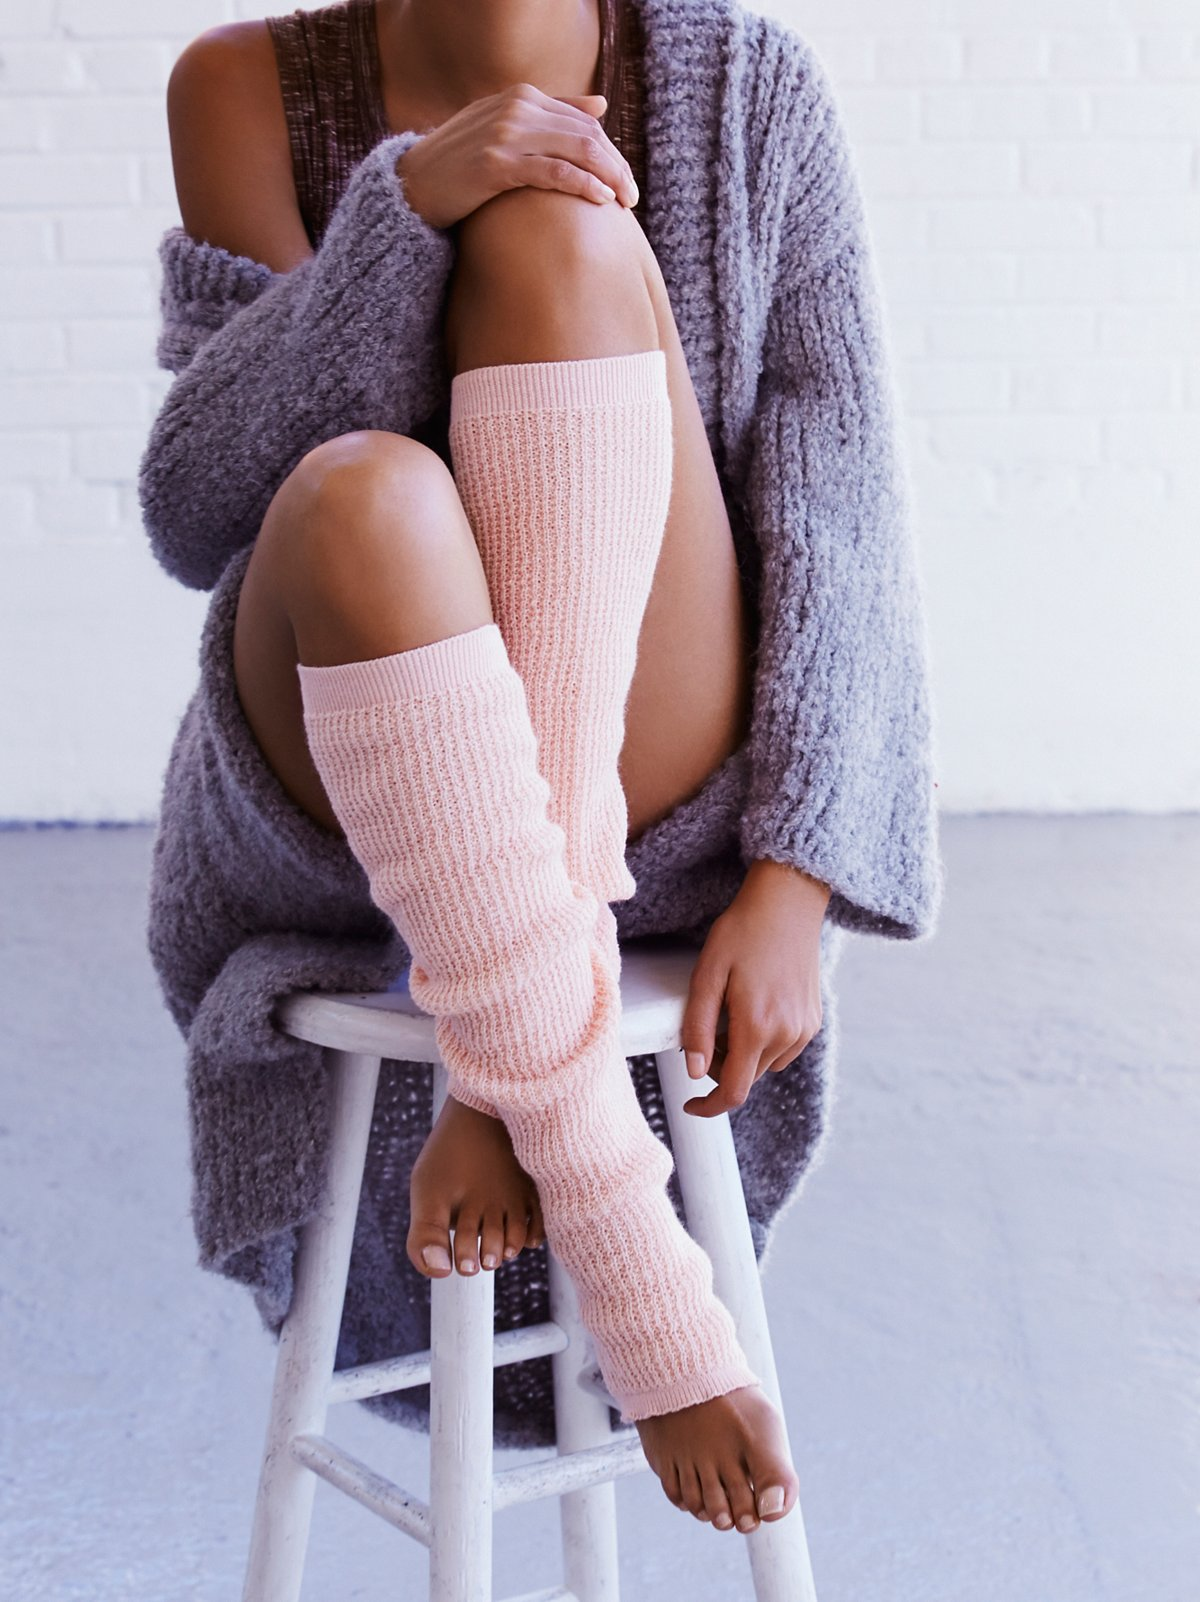 Where To Buy Bodysuits Ballet Sweaters And More Dance